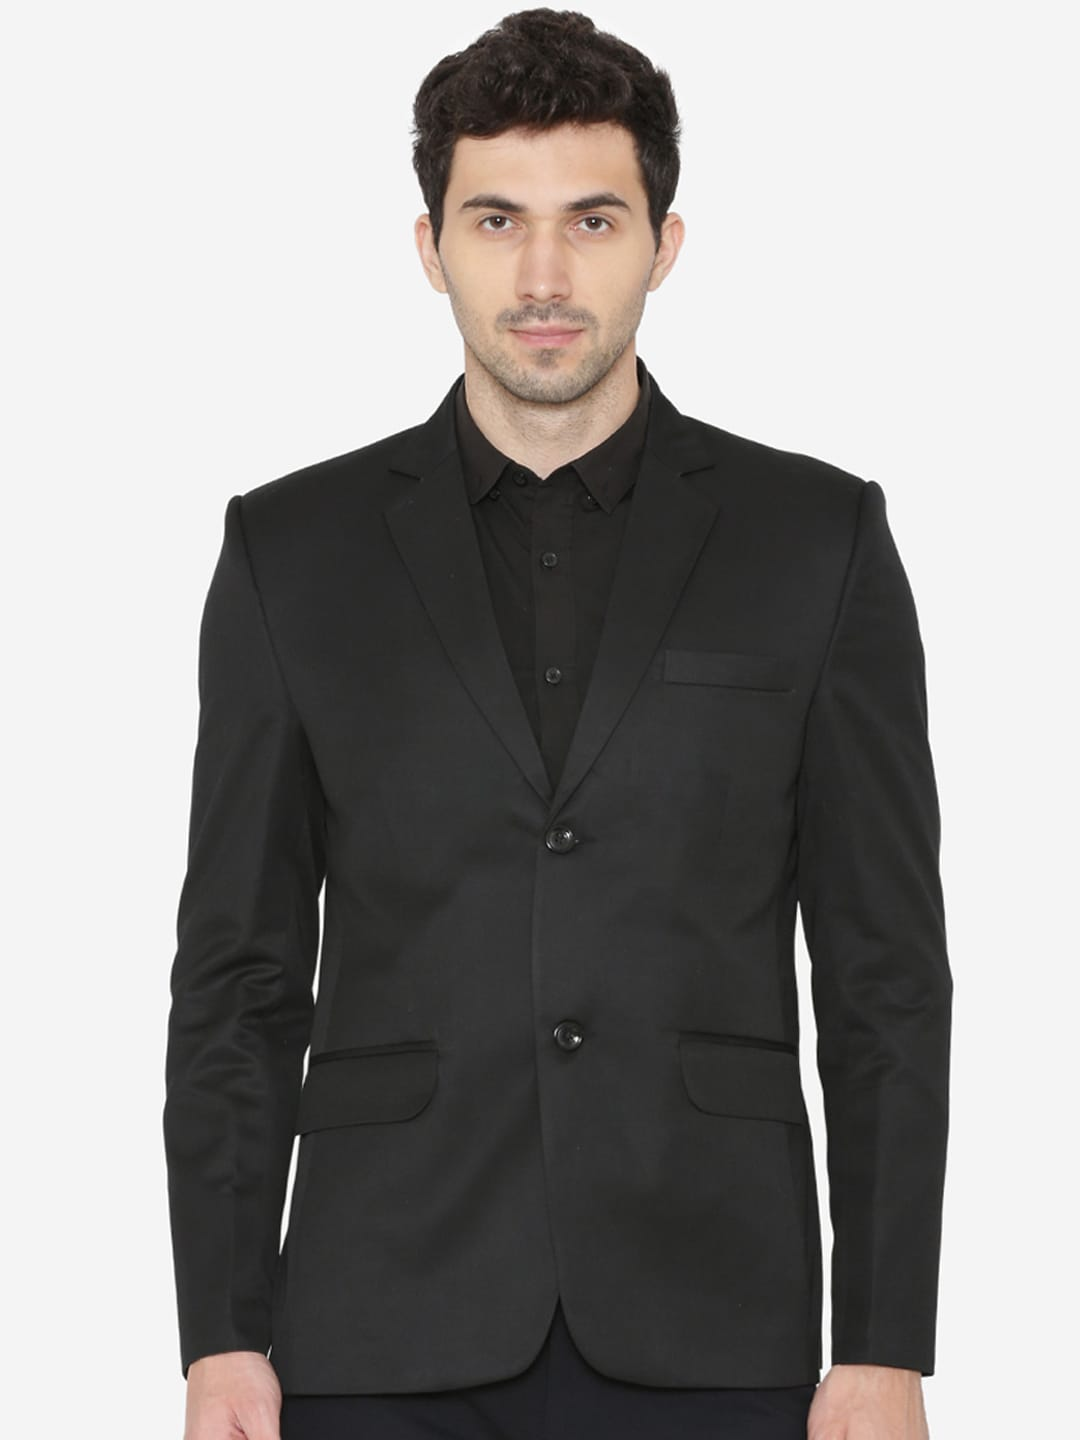 c1dca4bd5ad Black Formal Blazers - Buy Black Formal Blazers online in India